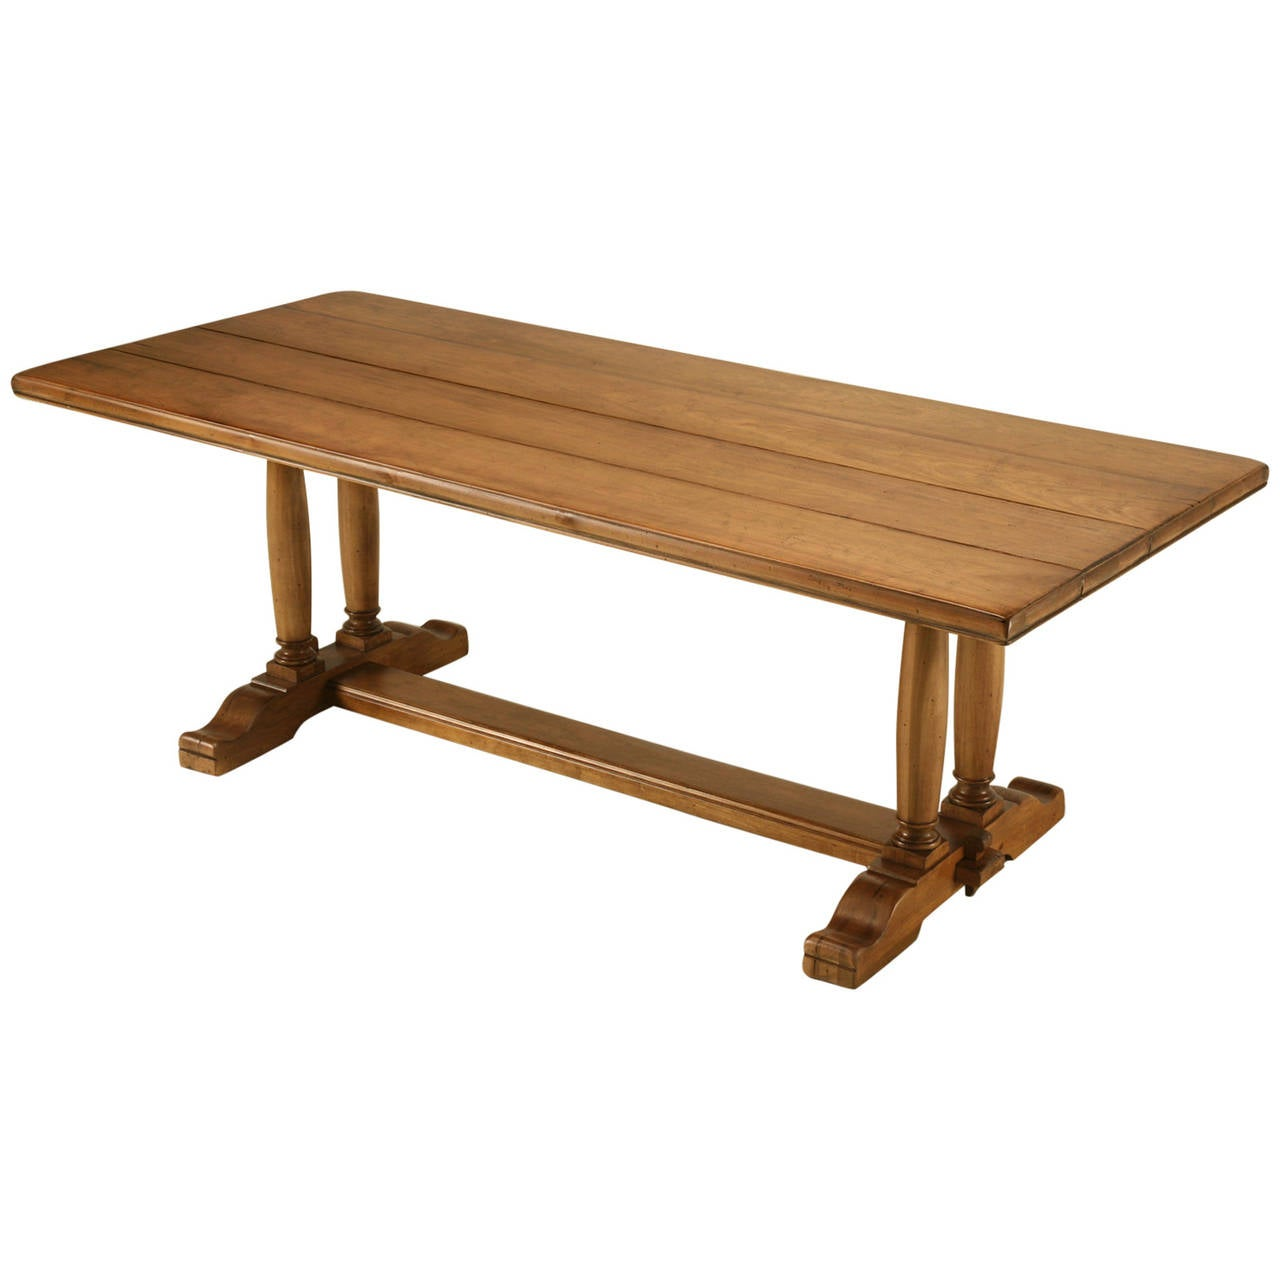 this trestle dining table is no longer available